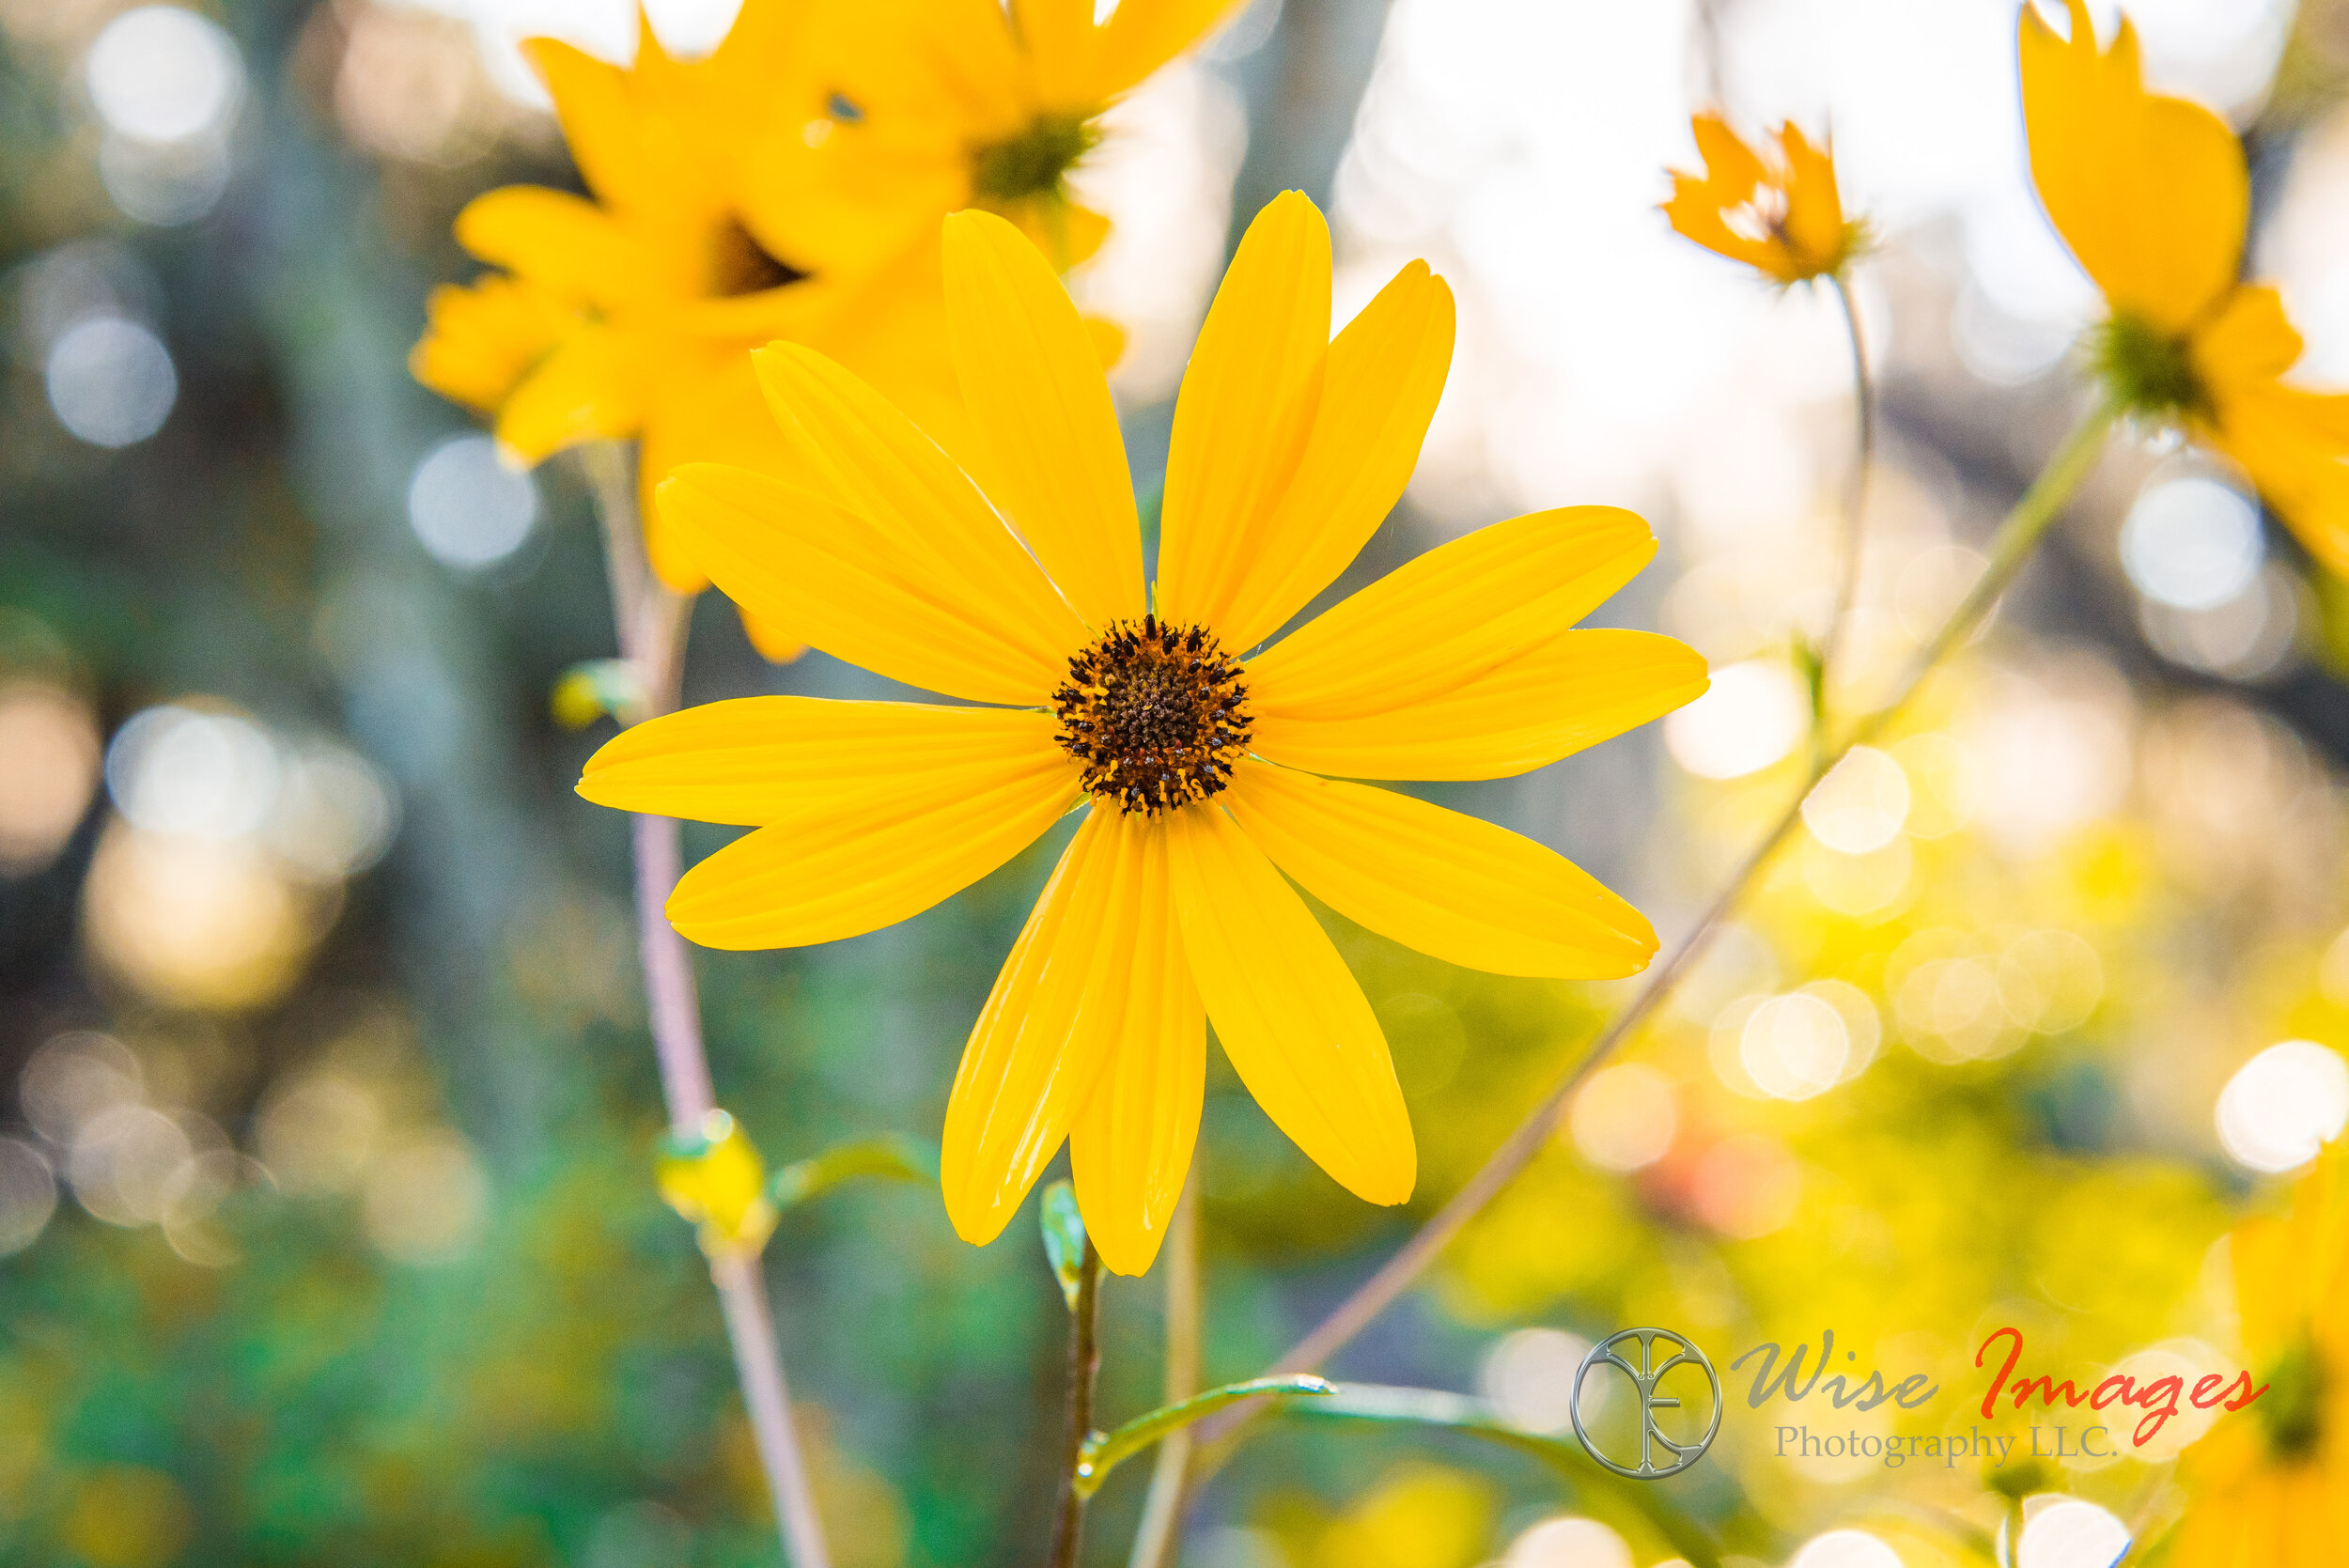 Sunshine in a Flower - De Leon Springs State Park; De Leon Springs, FloridaThis beautiful imagery brings a smile to my face!Open Edition